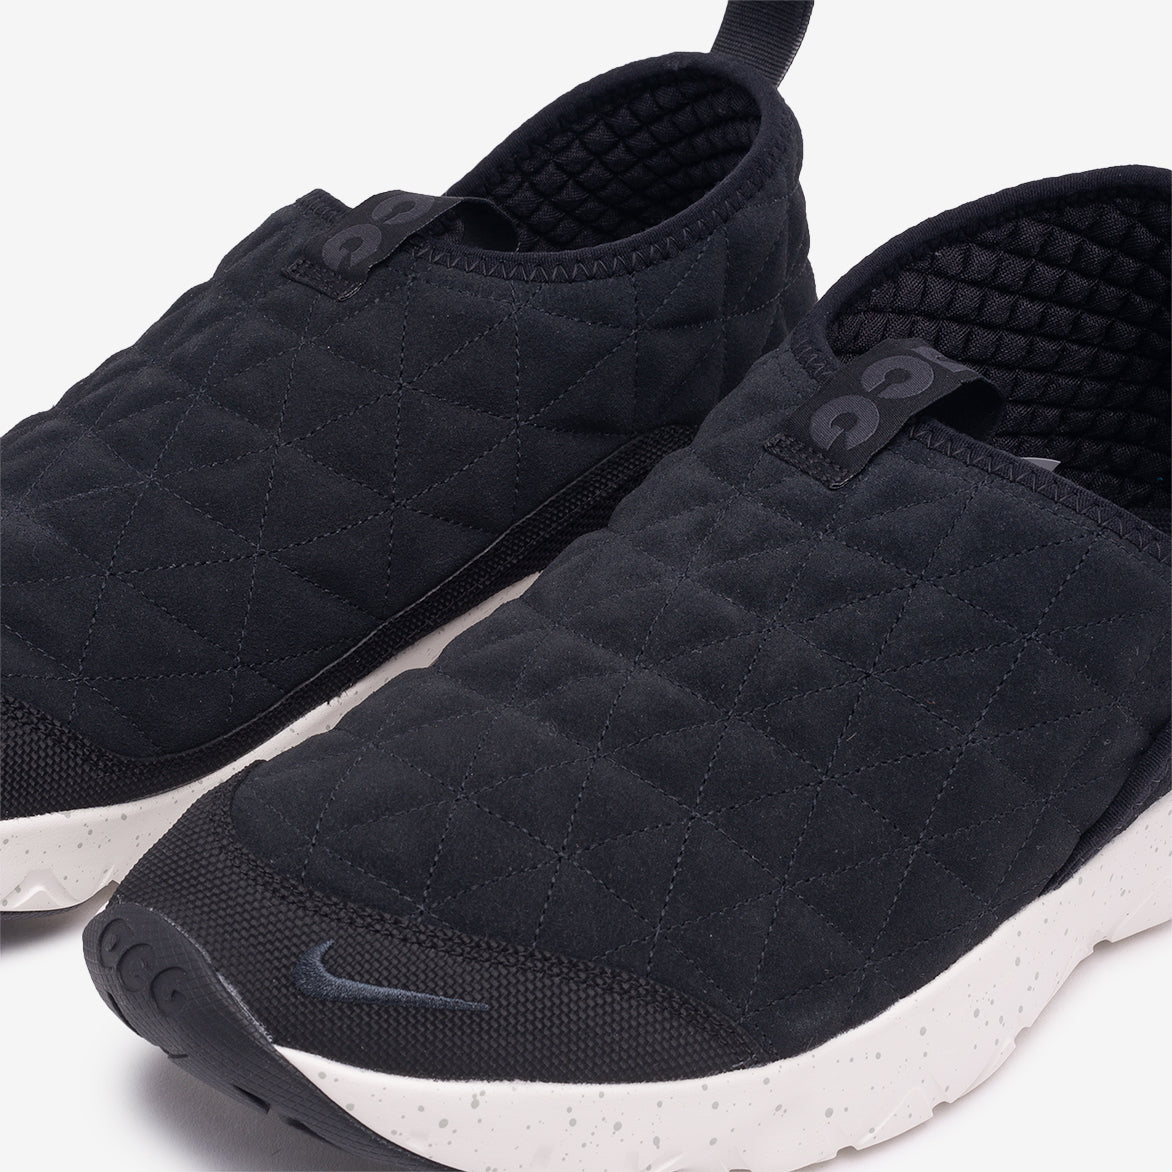 ACG MOC 3.0 LEATHER - BLACK / ANTHRACITE